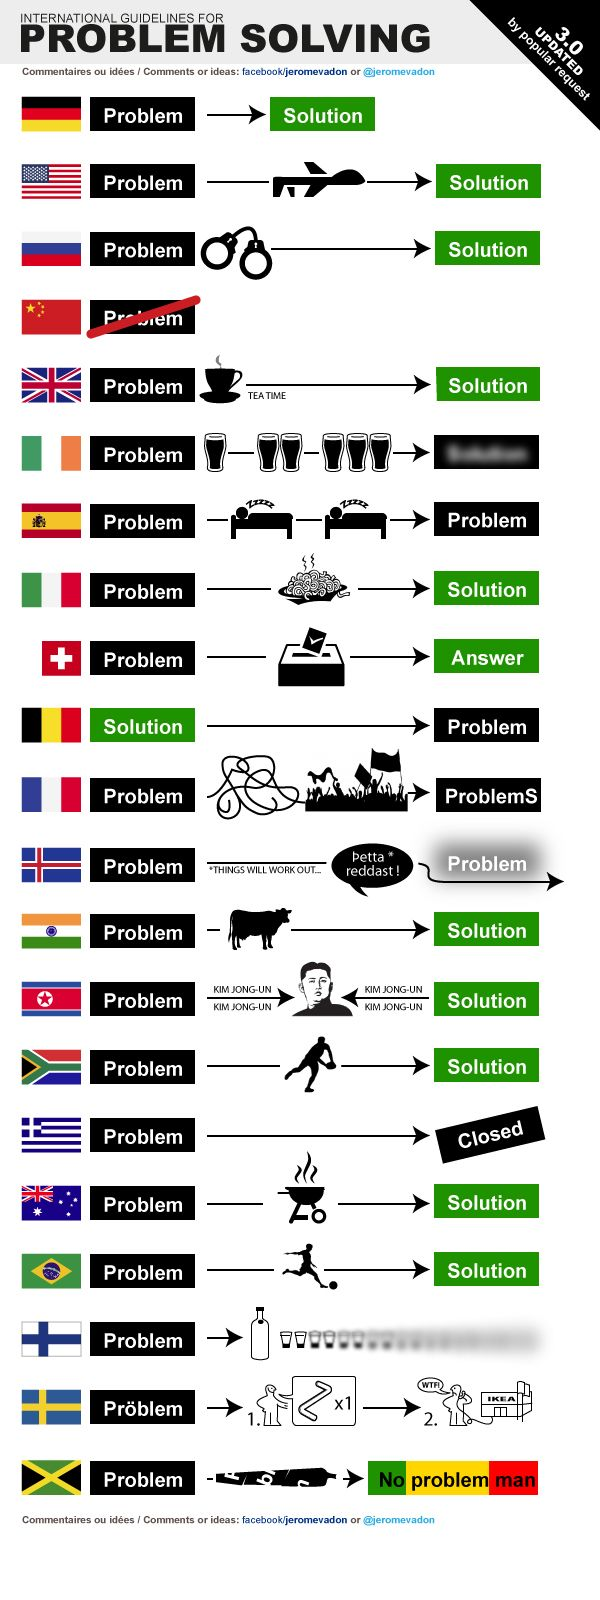 International guidlines for problem solving. | Nationality Stereotypes | Know Your Meme